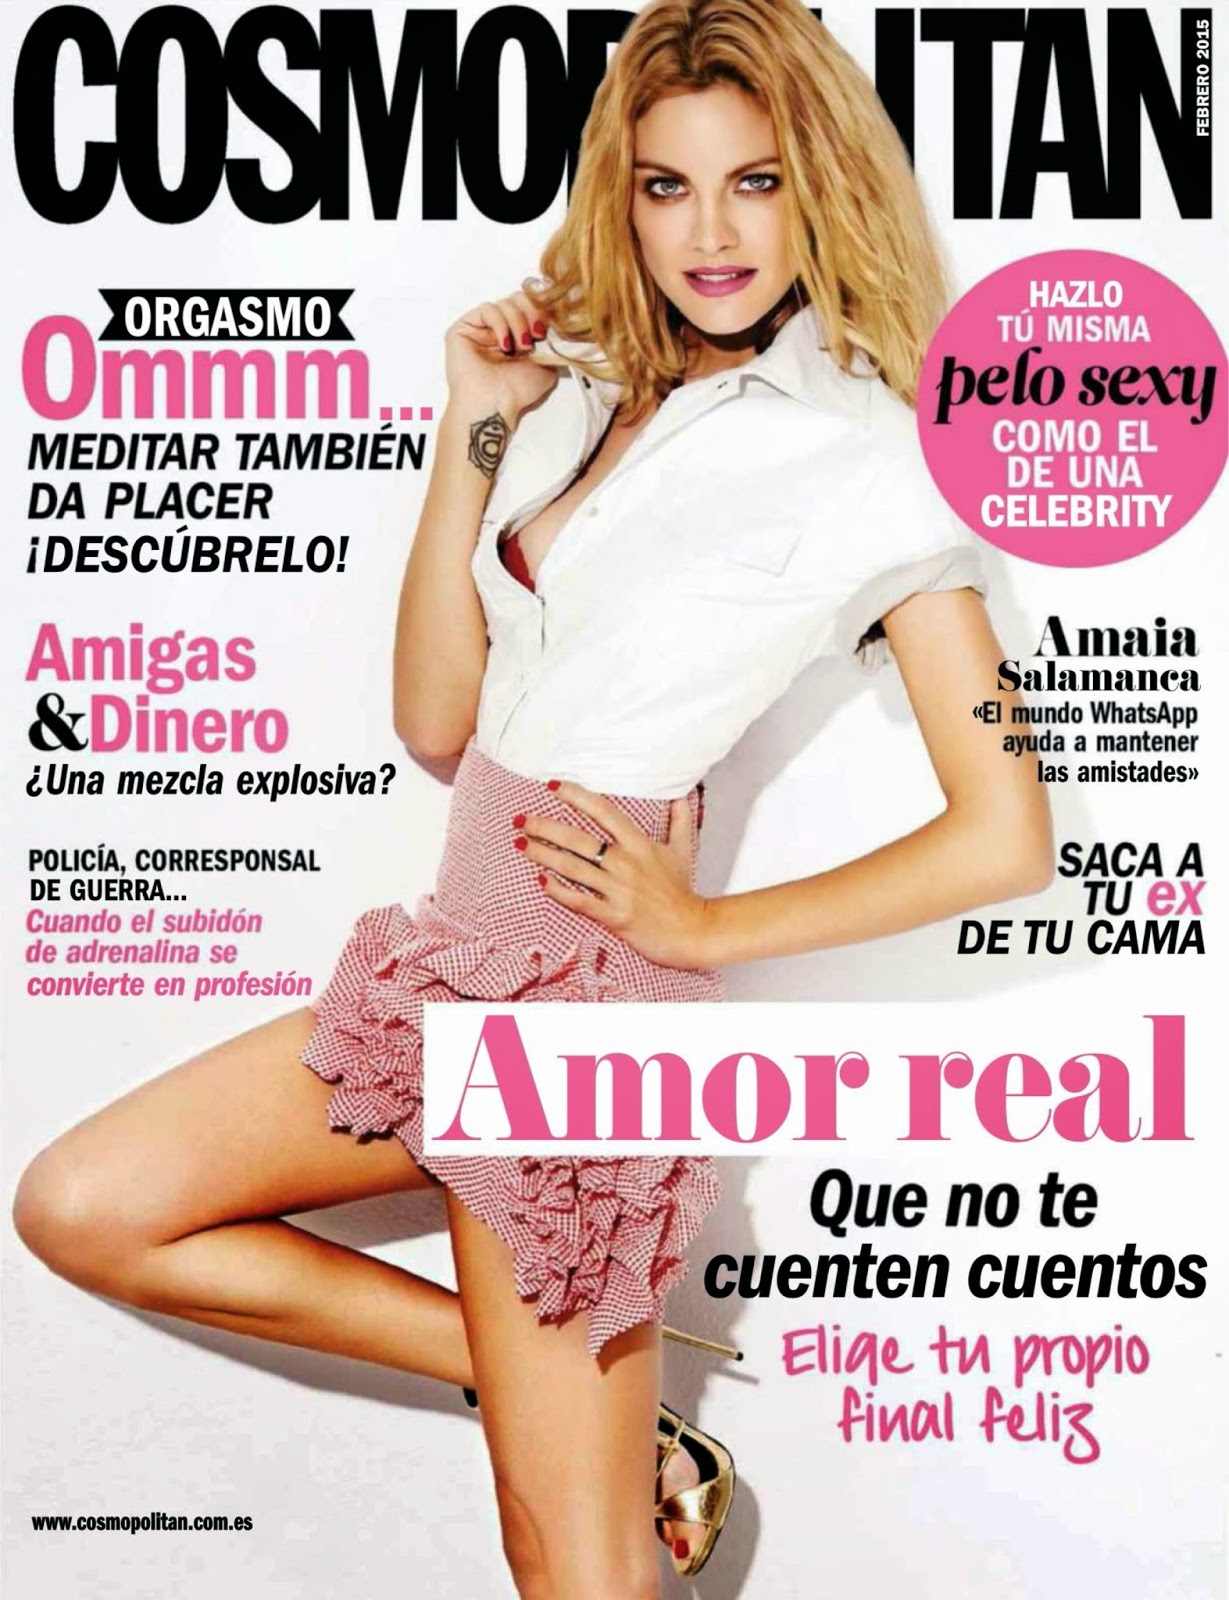 Actress, Model: Amaia Salamanca - Cosmopolitan, Spain